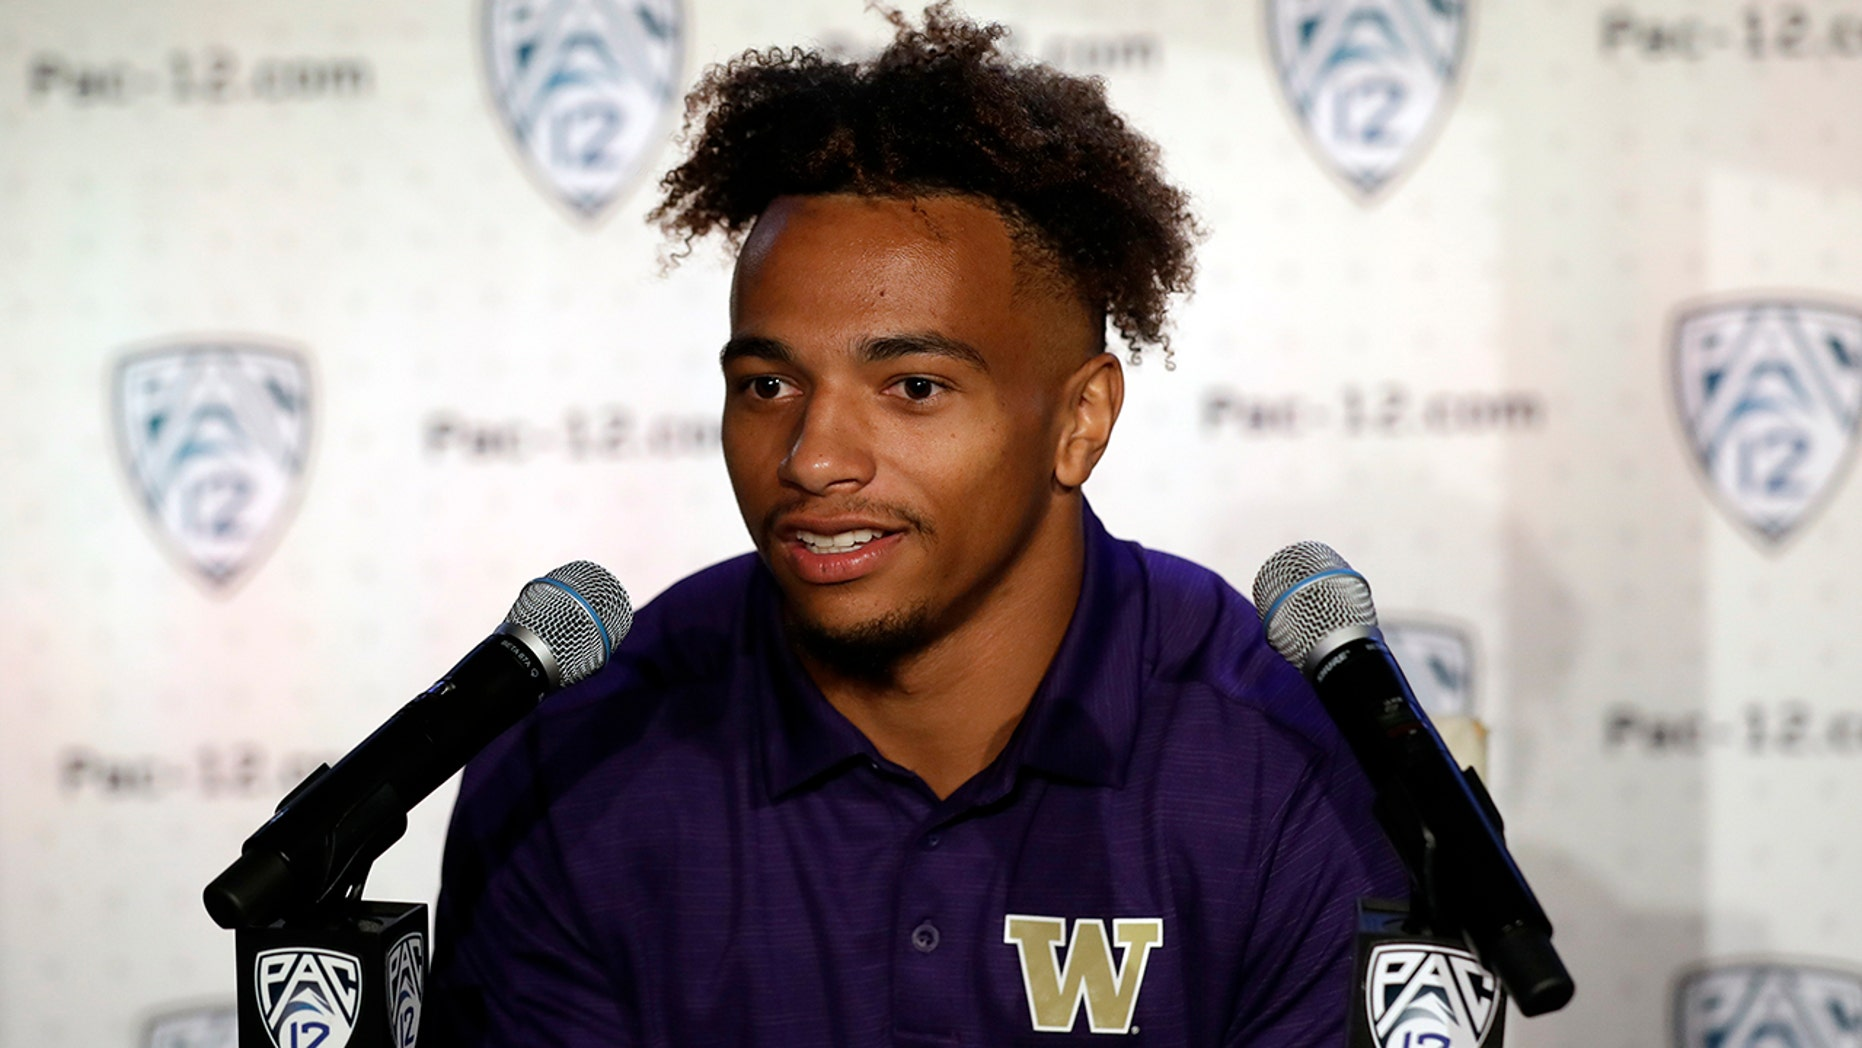 Washington defensive back Myles Bryant answers questions during the Pac-12 Conference NCAA college football Media Day Wednesday, July 24, 2019, in Los Angeles. (AP Photo/Marcio Jose Sanchez)